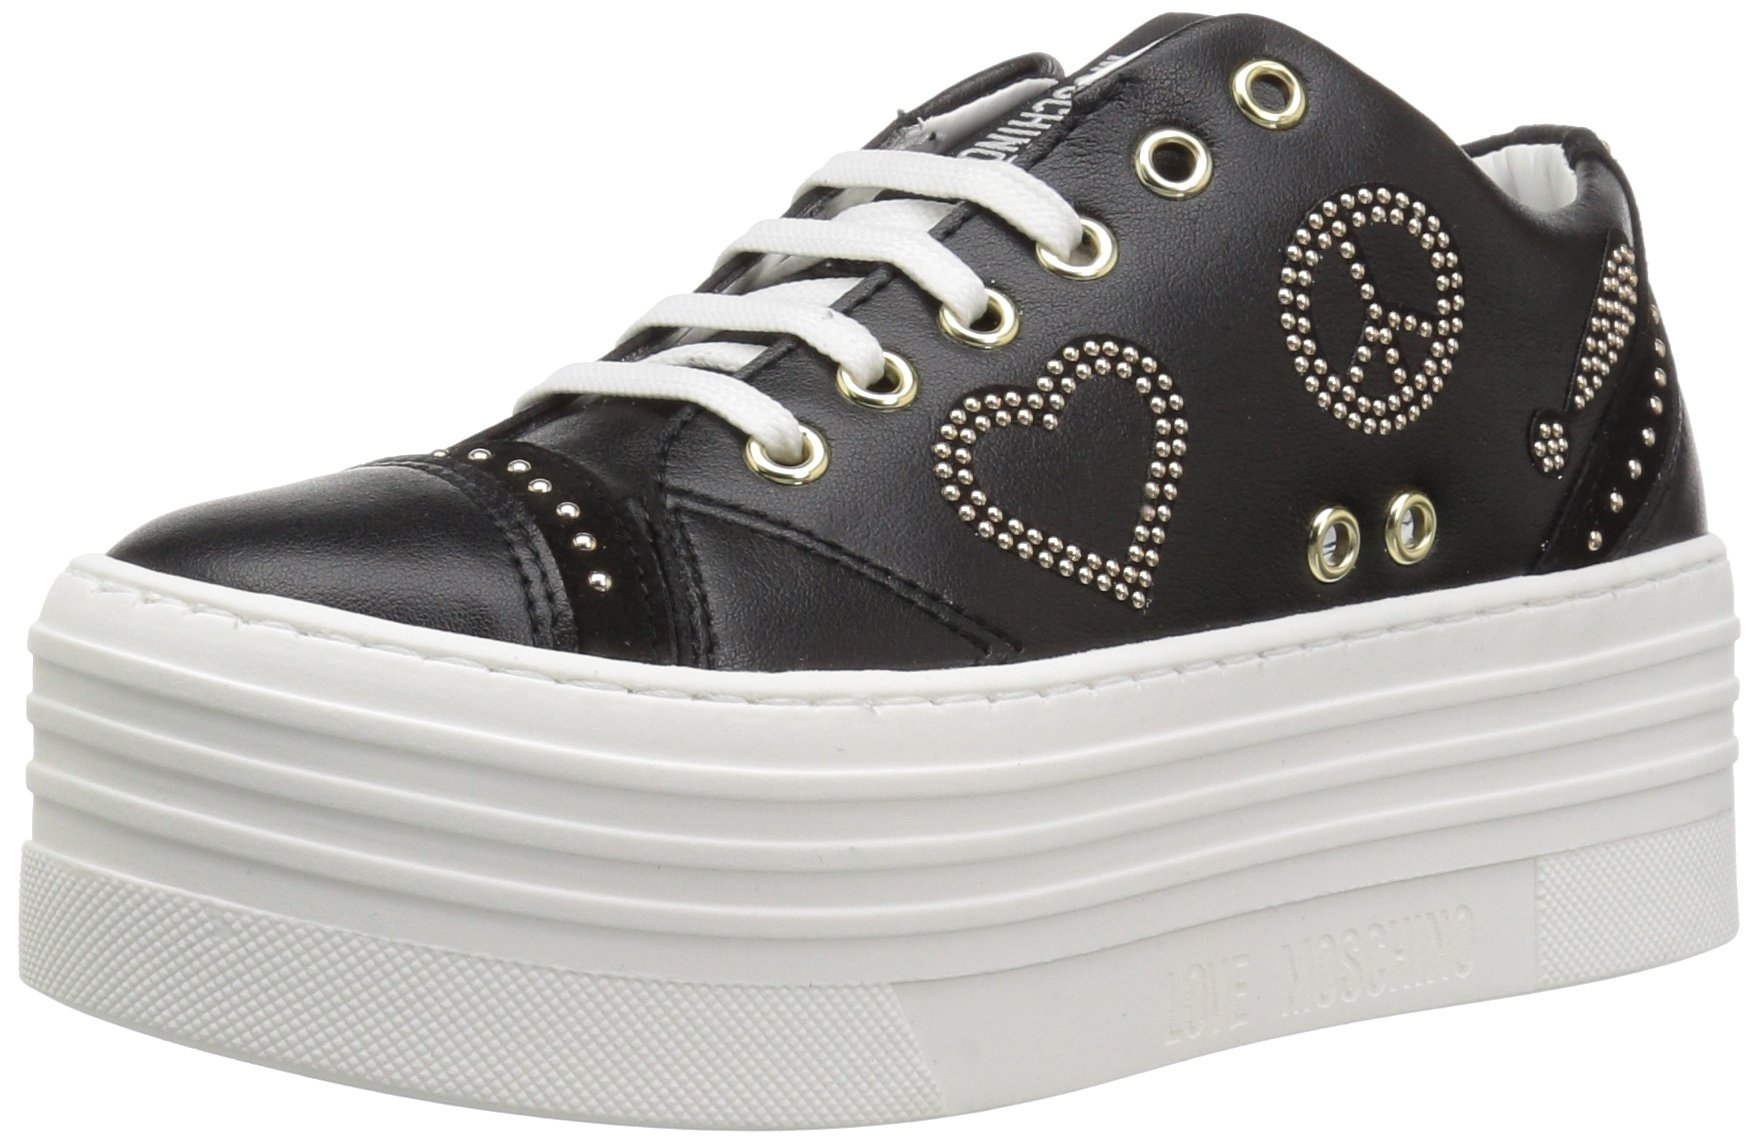 Love Moschino Women's JA15116G15IA0000 Sneaker, Black, 38 M EU (7 US)